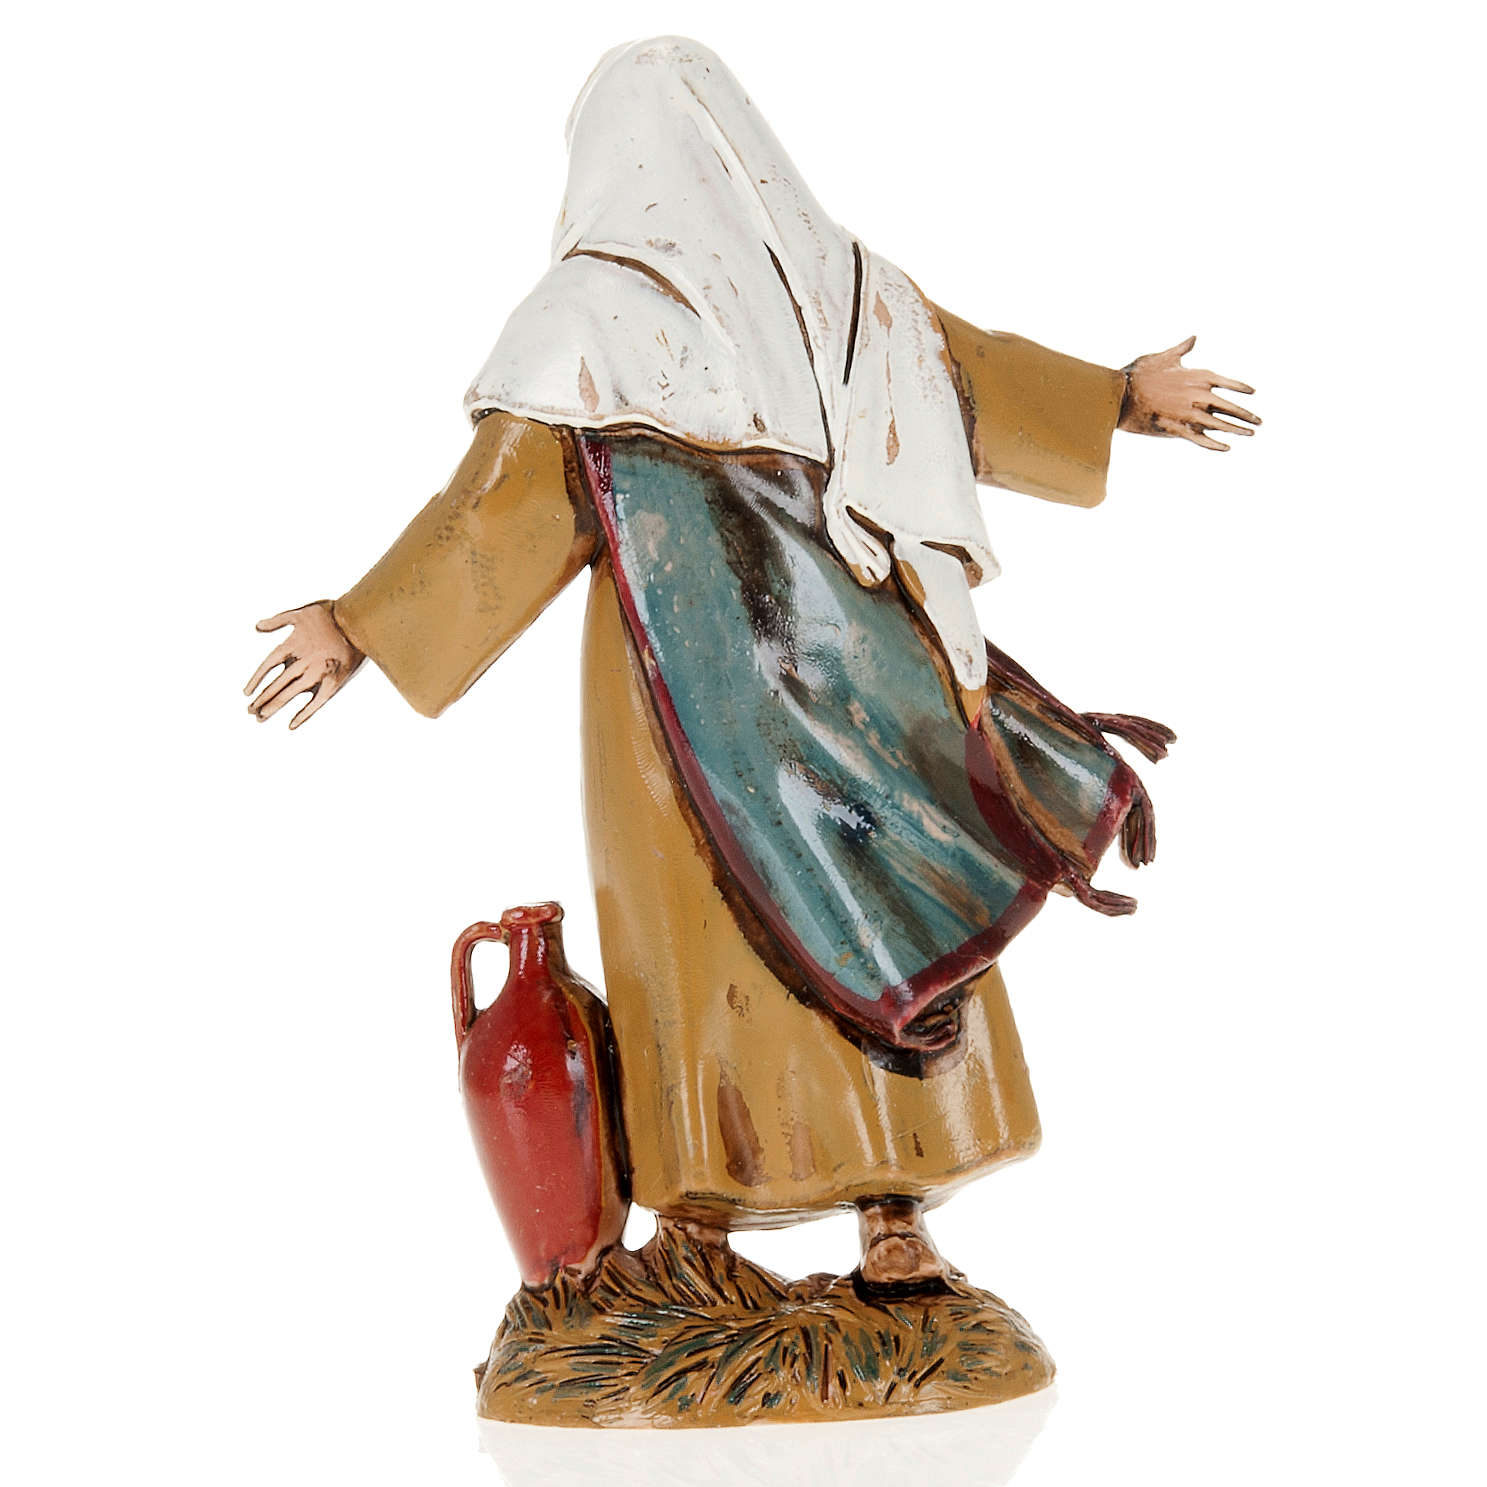 Man with open arms and amphora, nativity figurine, 10cm Moranduzzo 3